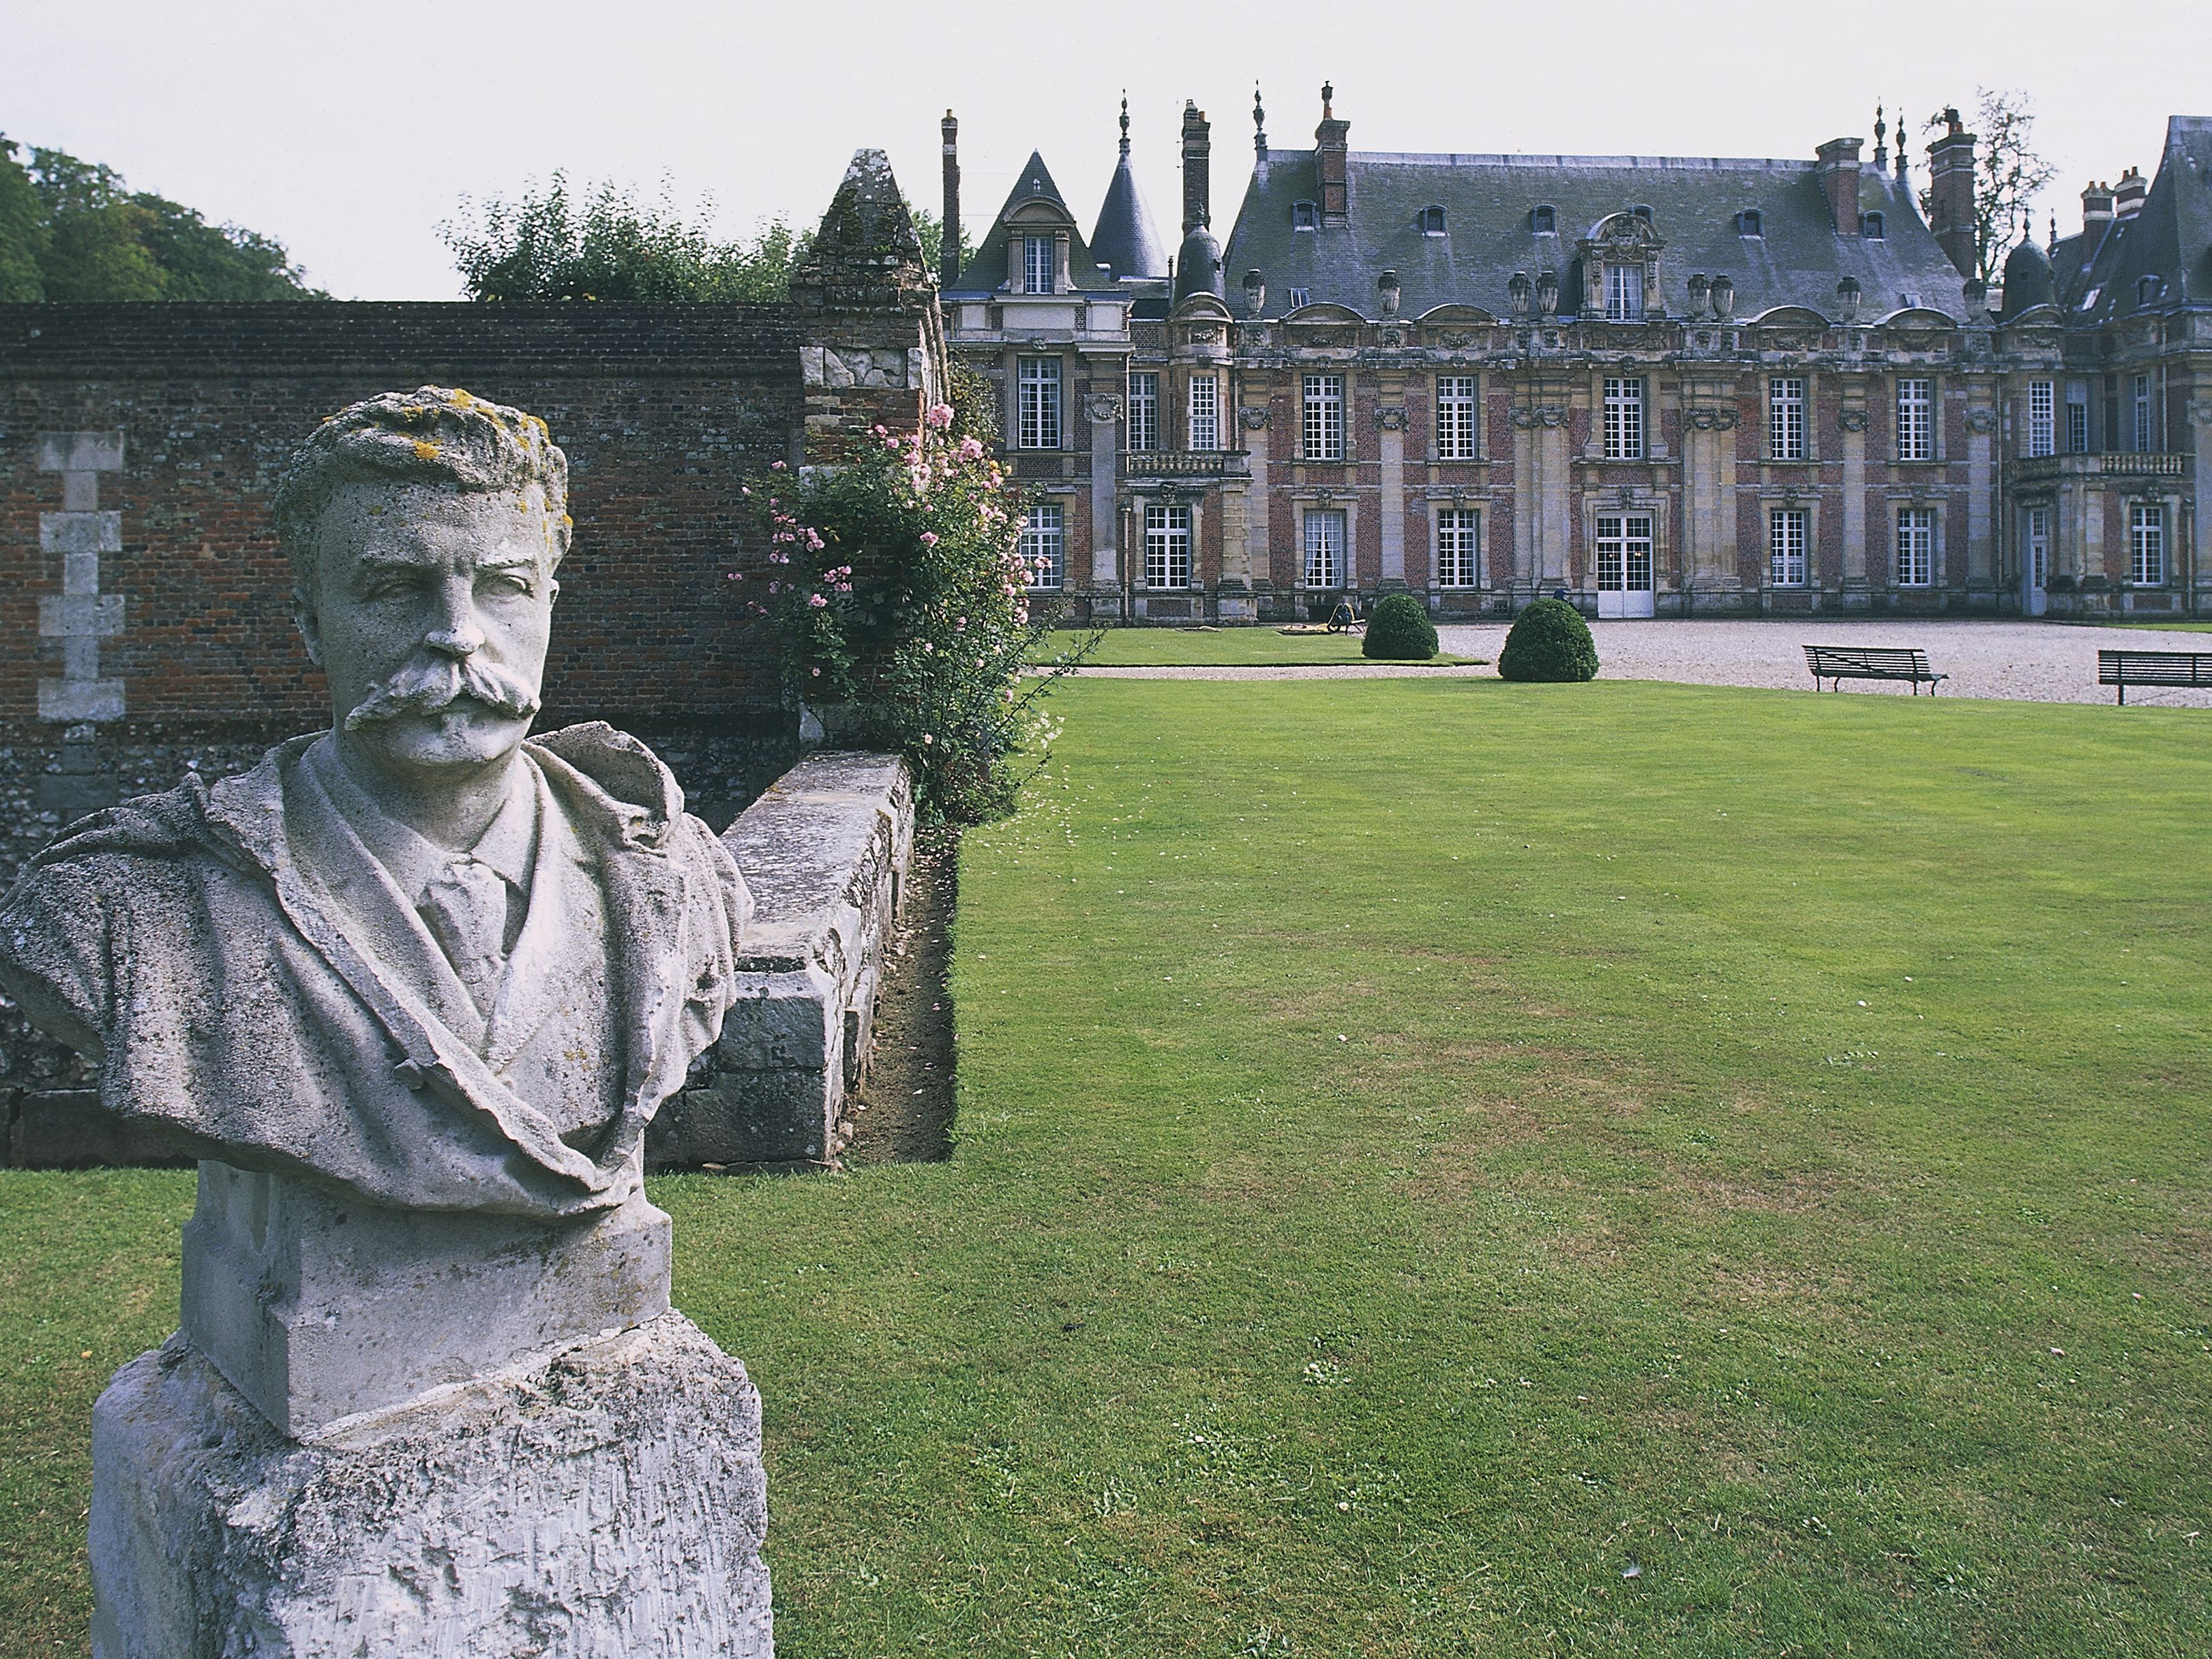 Guy de Maupassant, Father of the Short Story